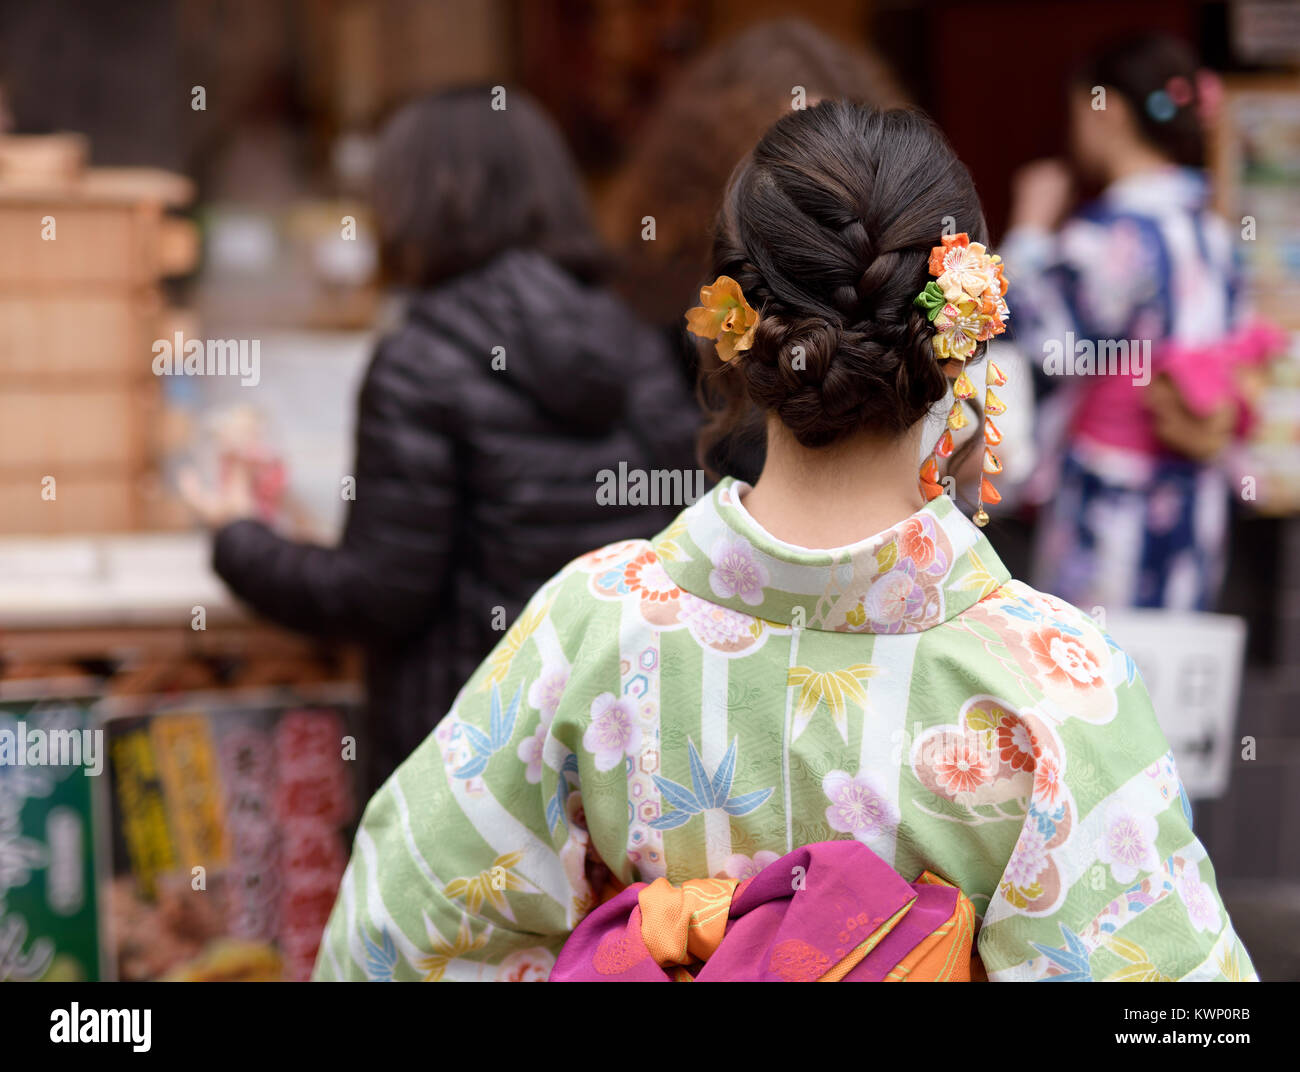 Japanese Girl In Colorful Yukata Kimono With A Pretty Hairstyle And